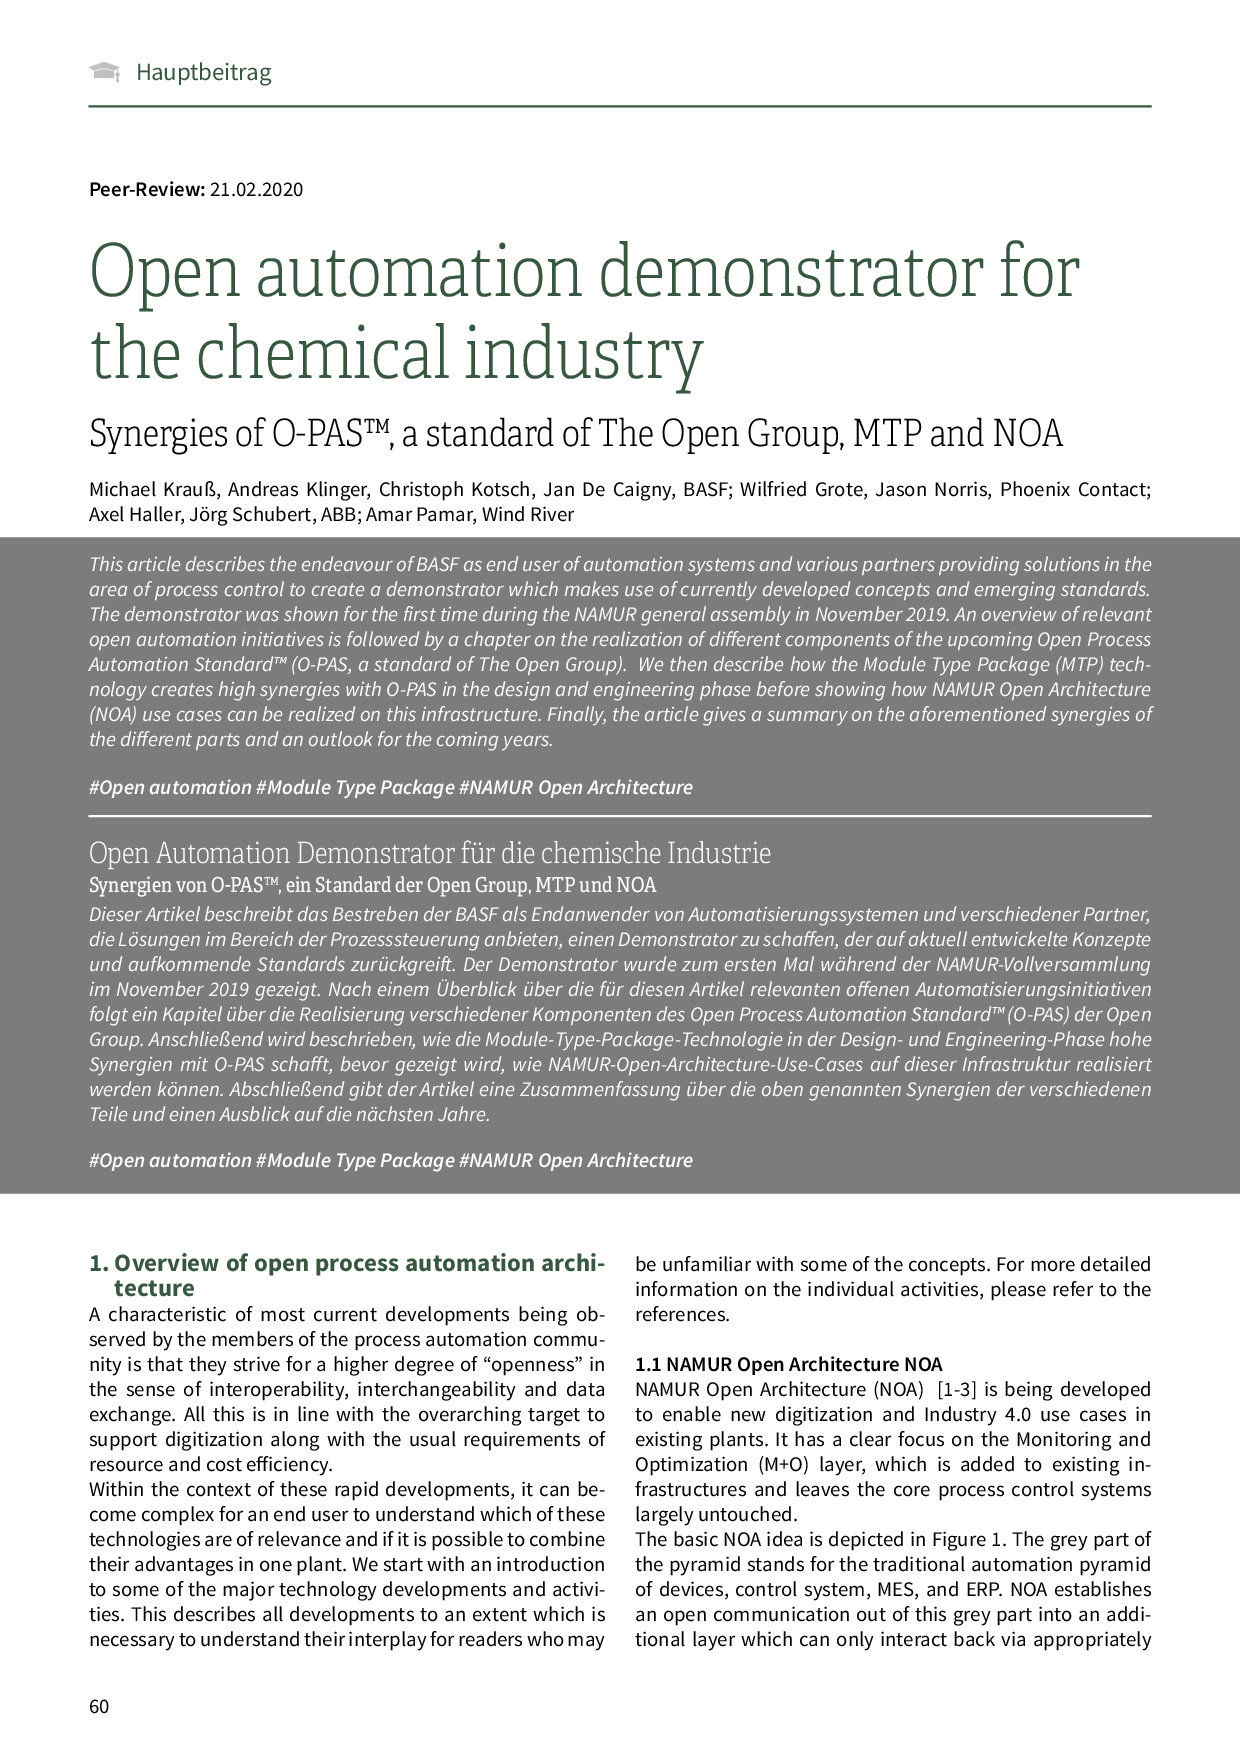 Open automation demonstrator for the chemical industry